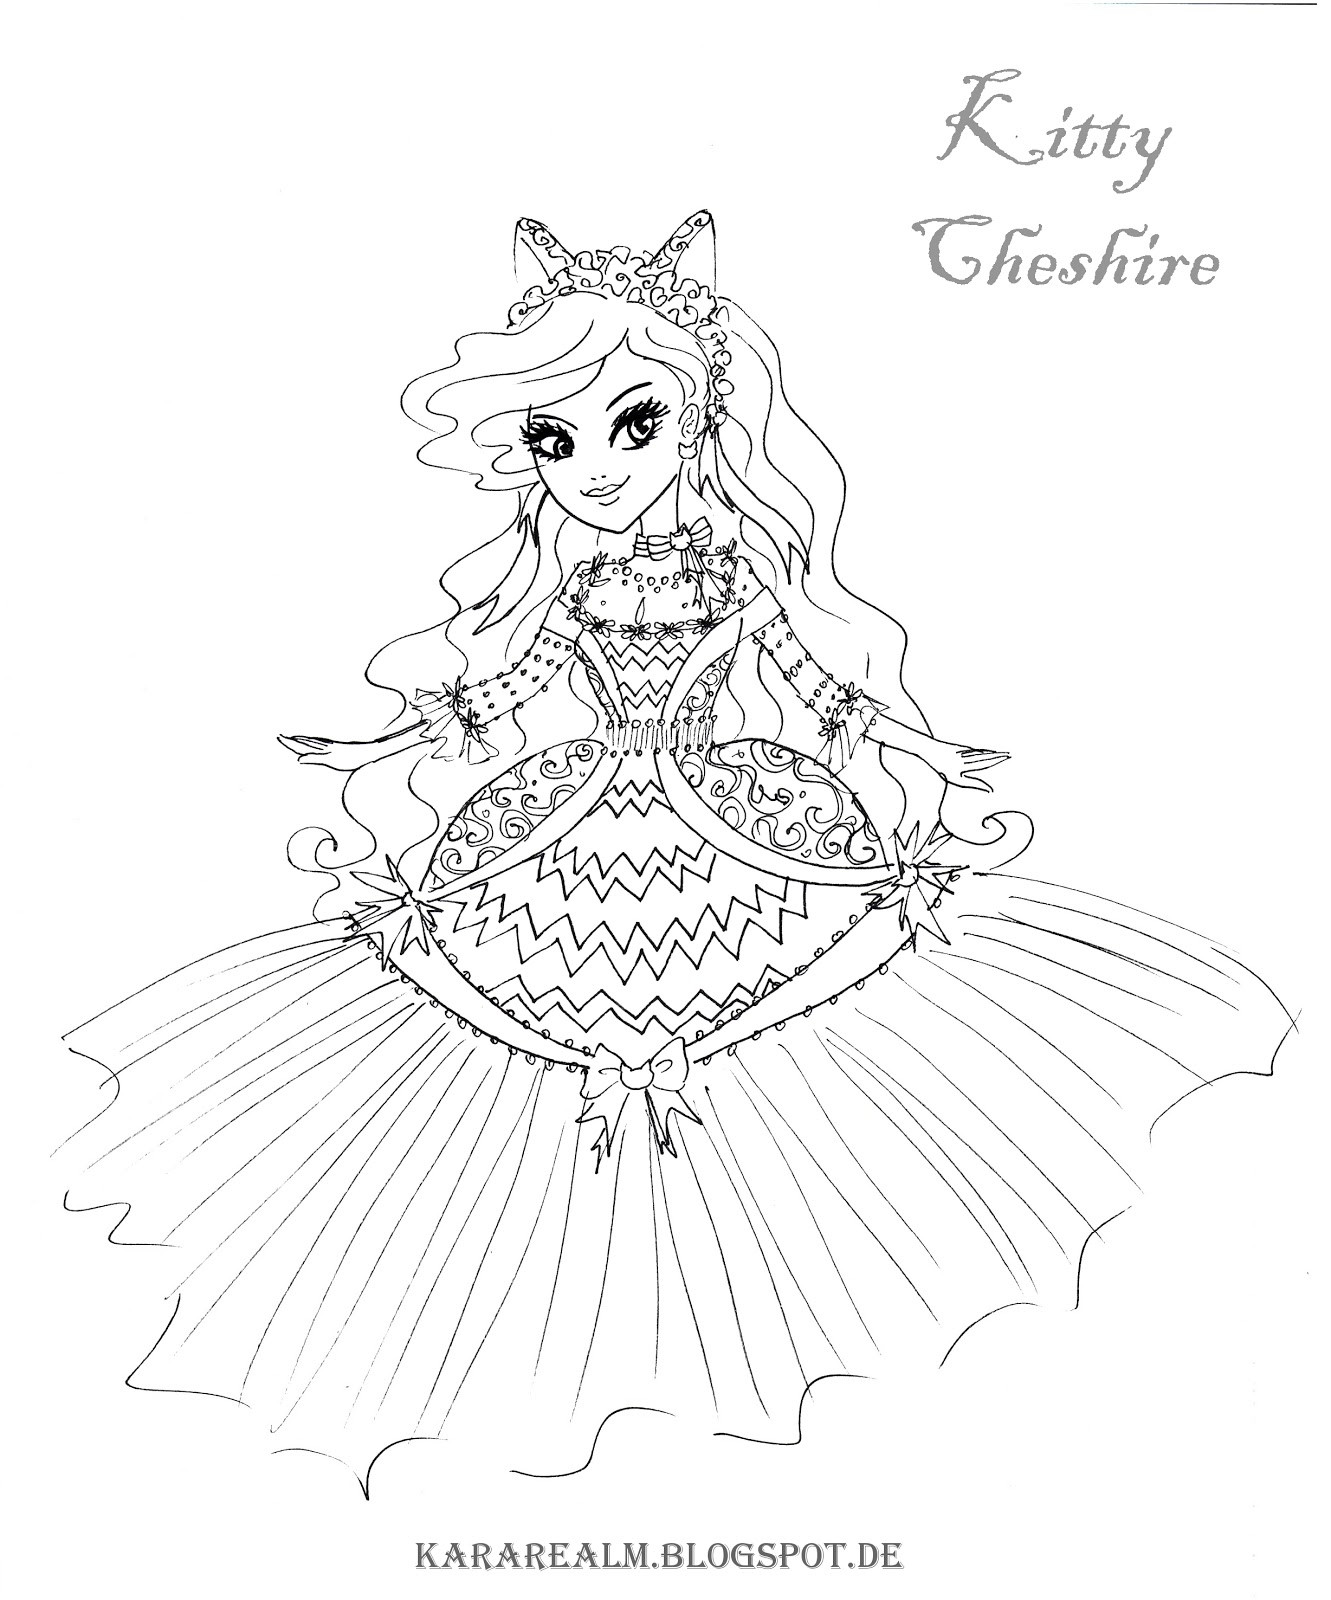 1331x1600 Ever After High Kitty Cheshire Coloring Pages